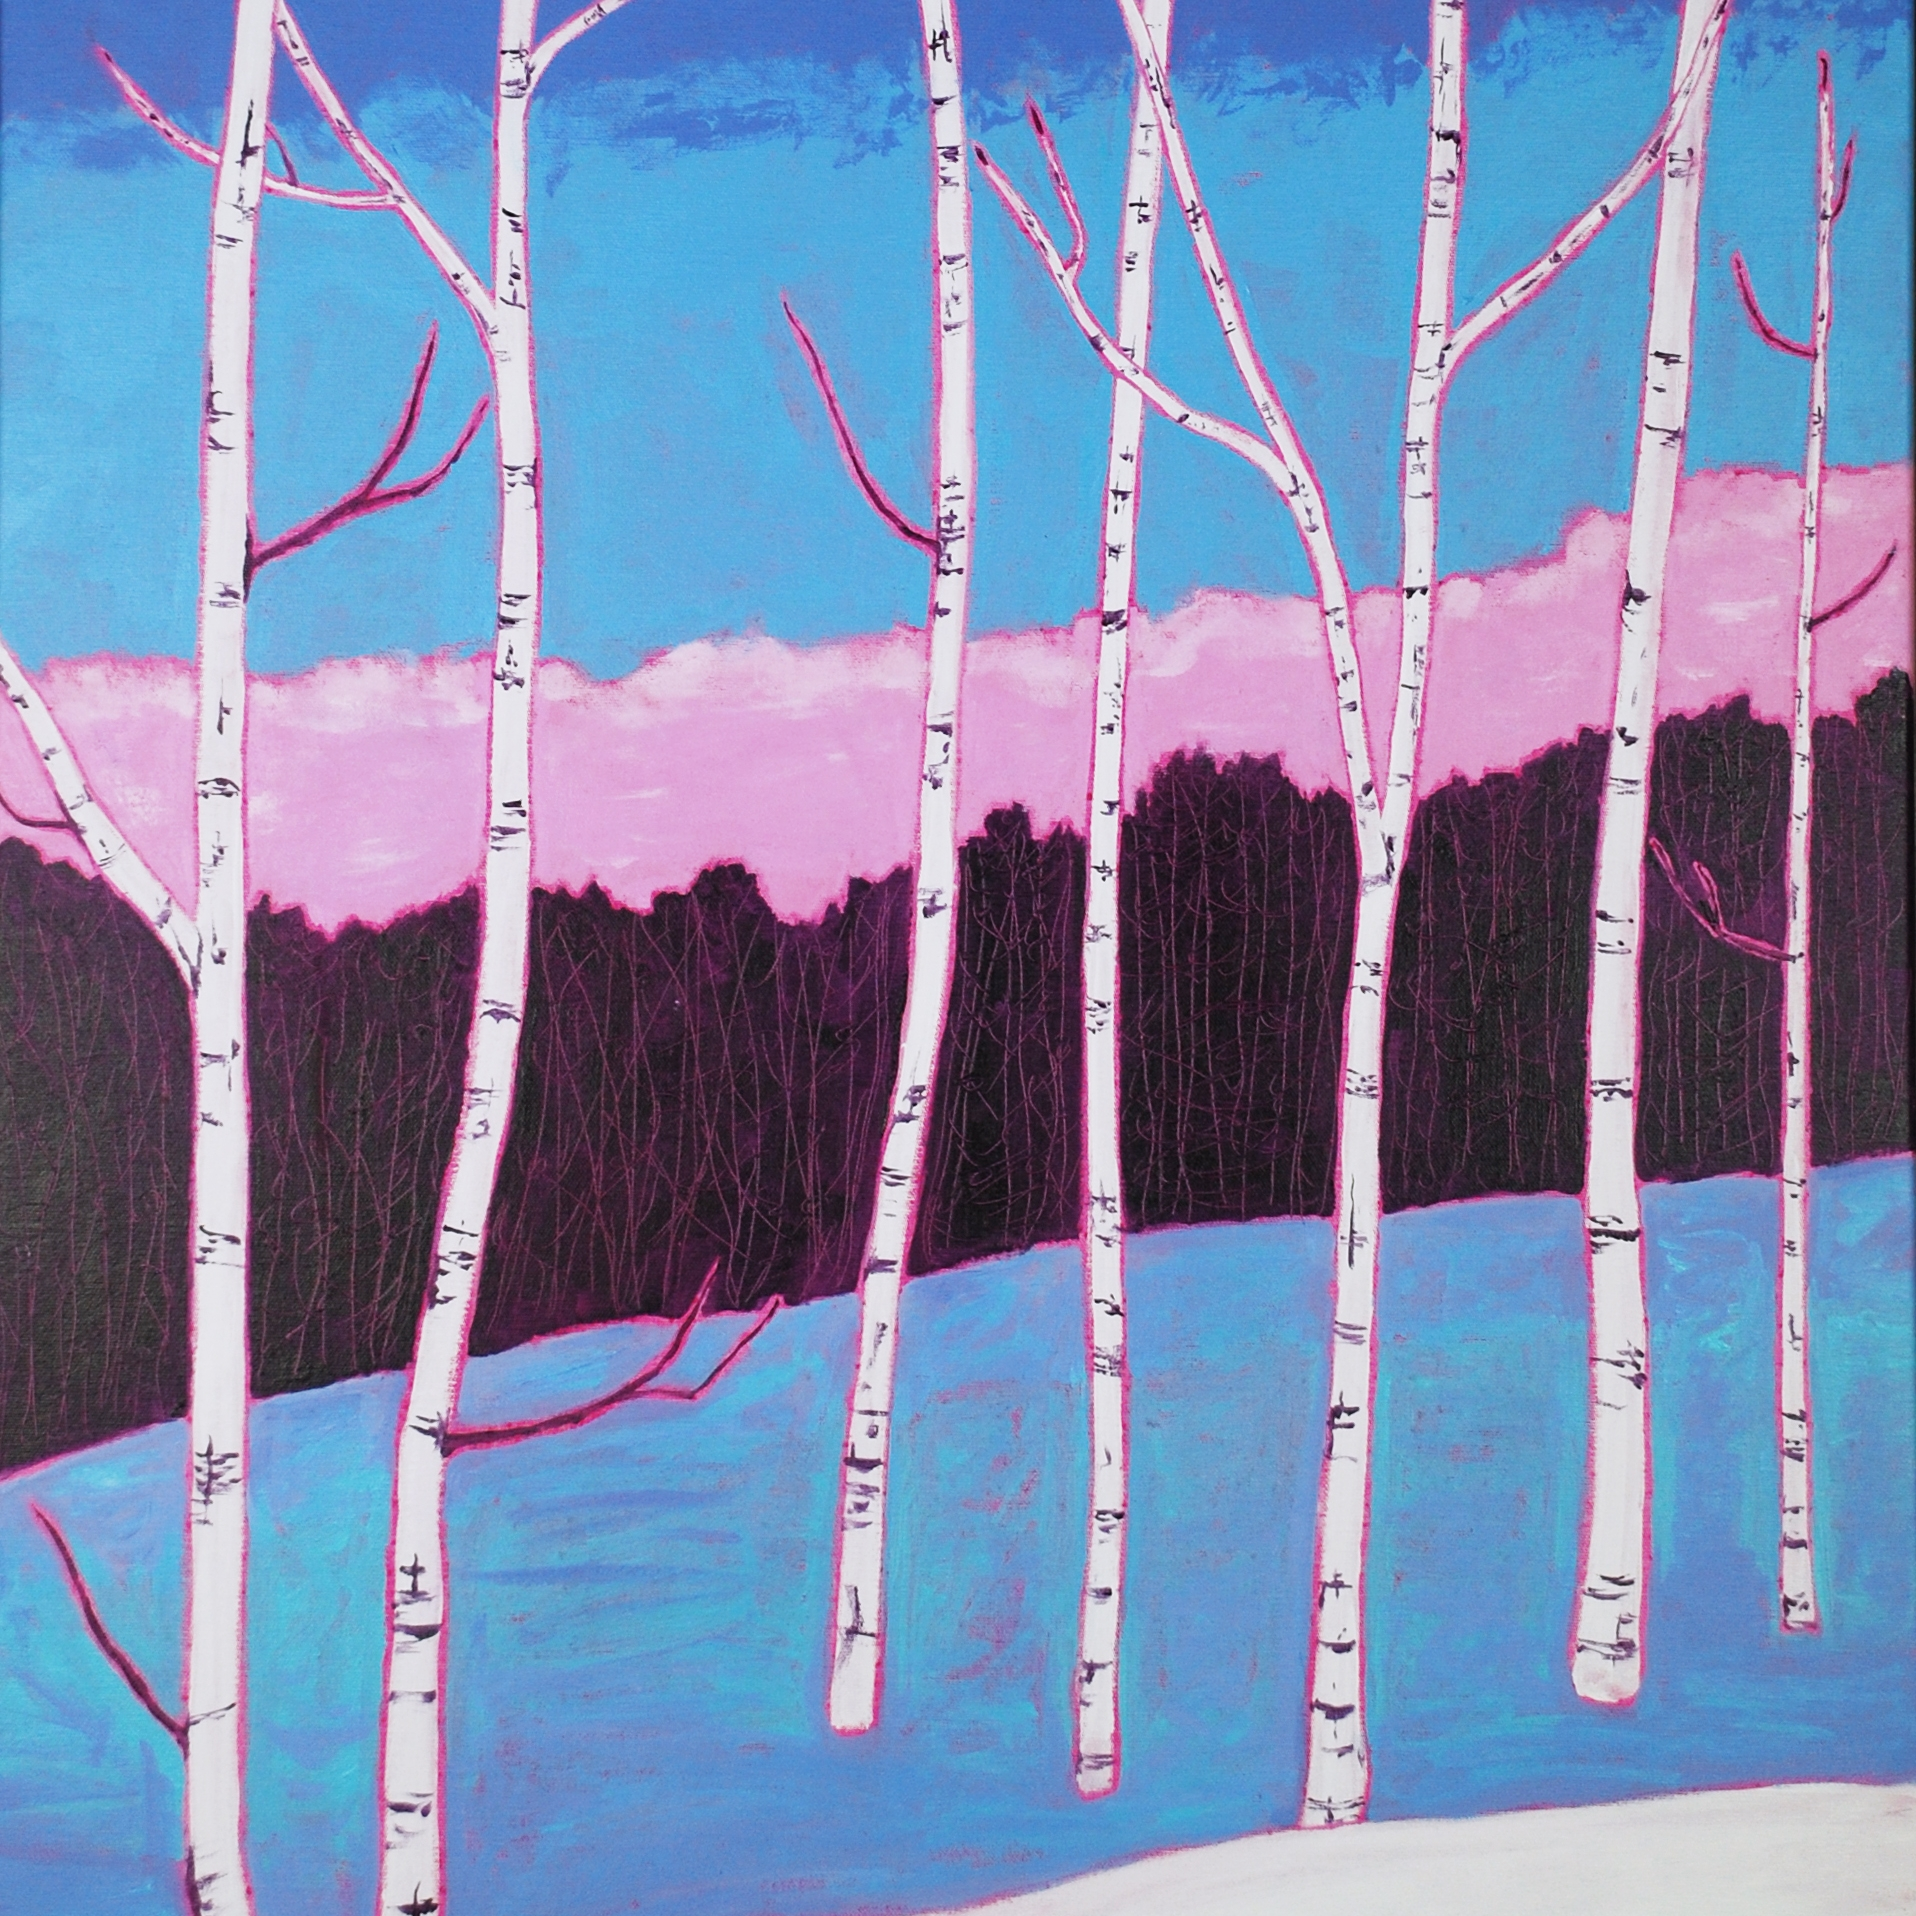 Marcia Crumley_Last Run of the Day_36in x 24in acrylic on canvas_November 2017 high res.jpg